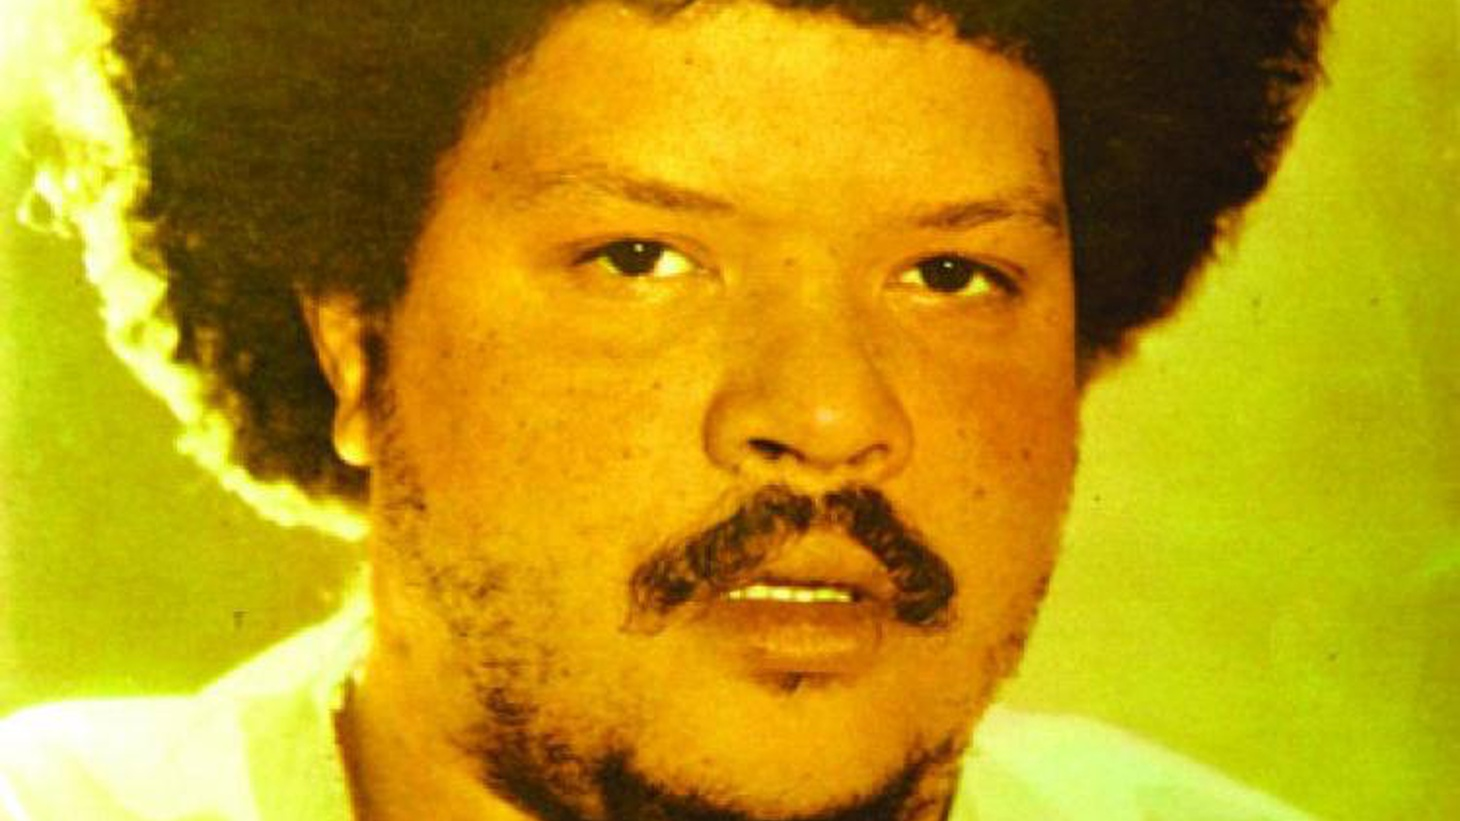 The Existential Soul of Tim Maia will be available to stream on demand from Monday, November 05 through November 12, 2012.